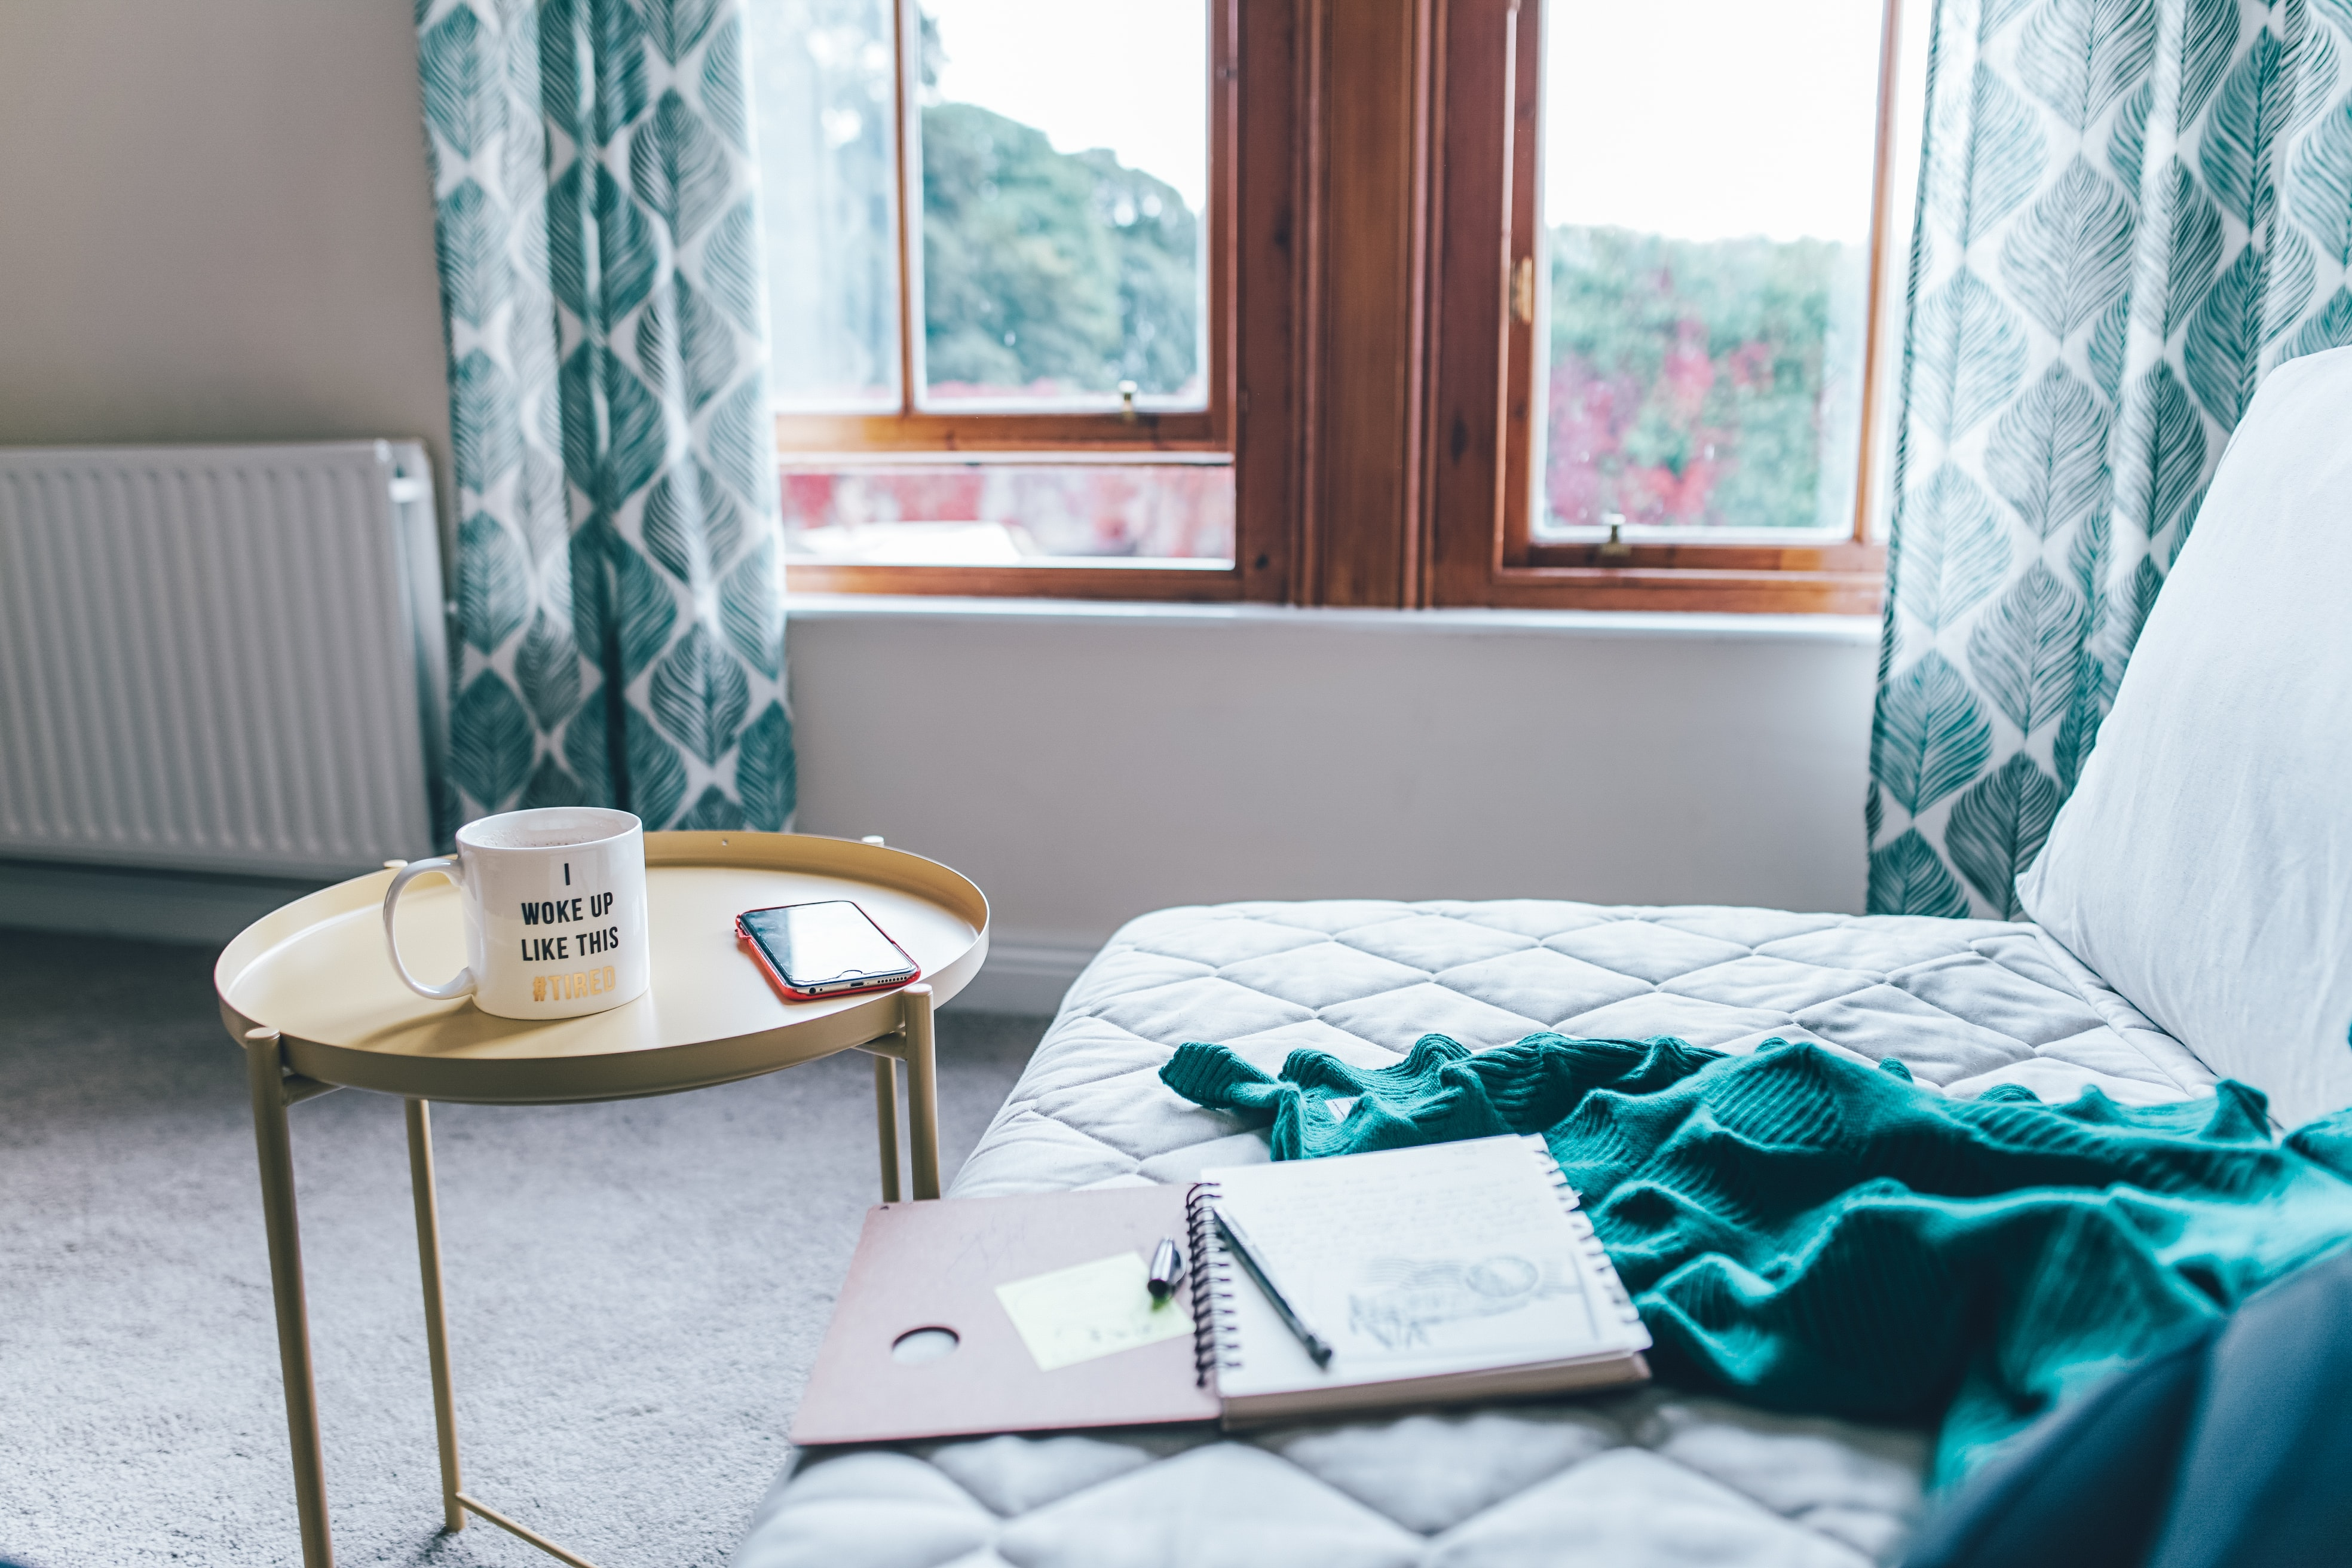 quilted white mattress with spiral notebook and green comforter beside round yellow end table inside room